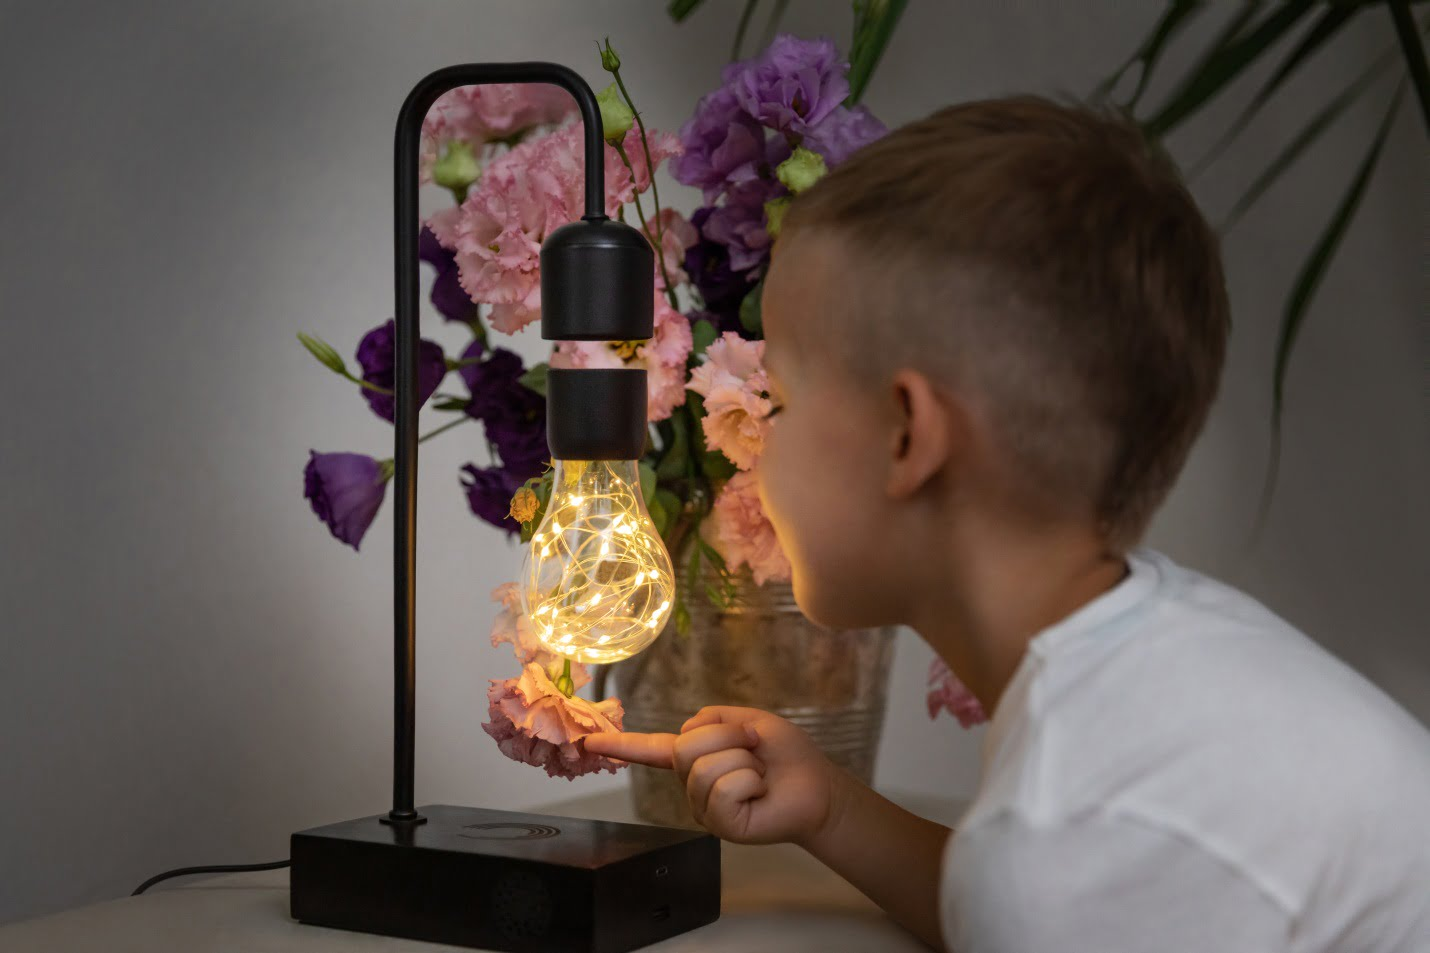 A kid playing with the bulb Gravita